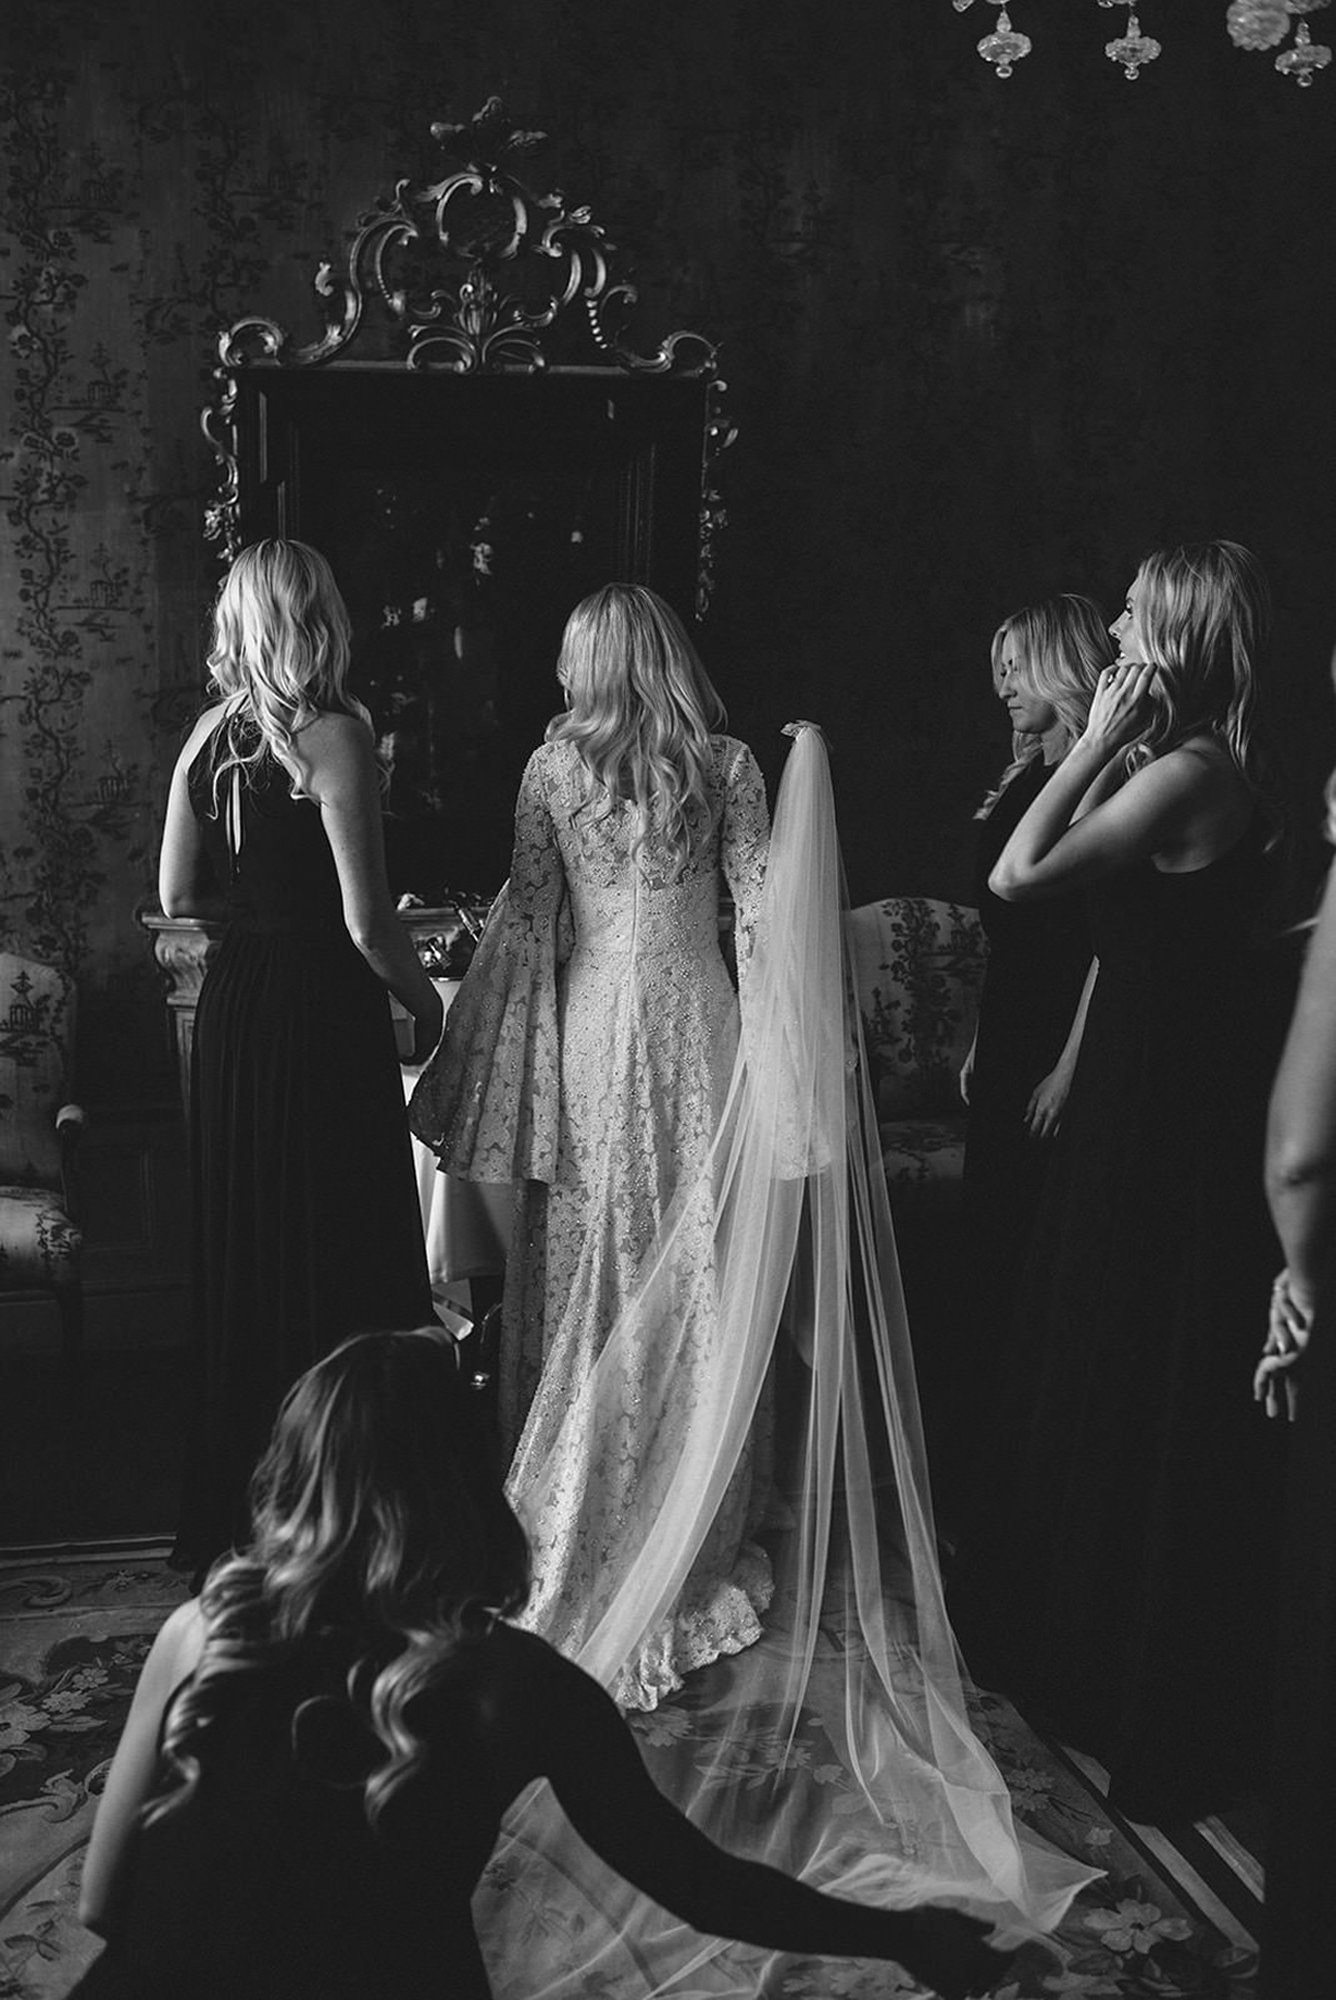 Black and white of bride getting ready with bridesmaids, by Thierry Joubert